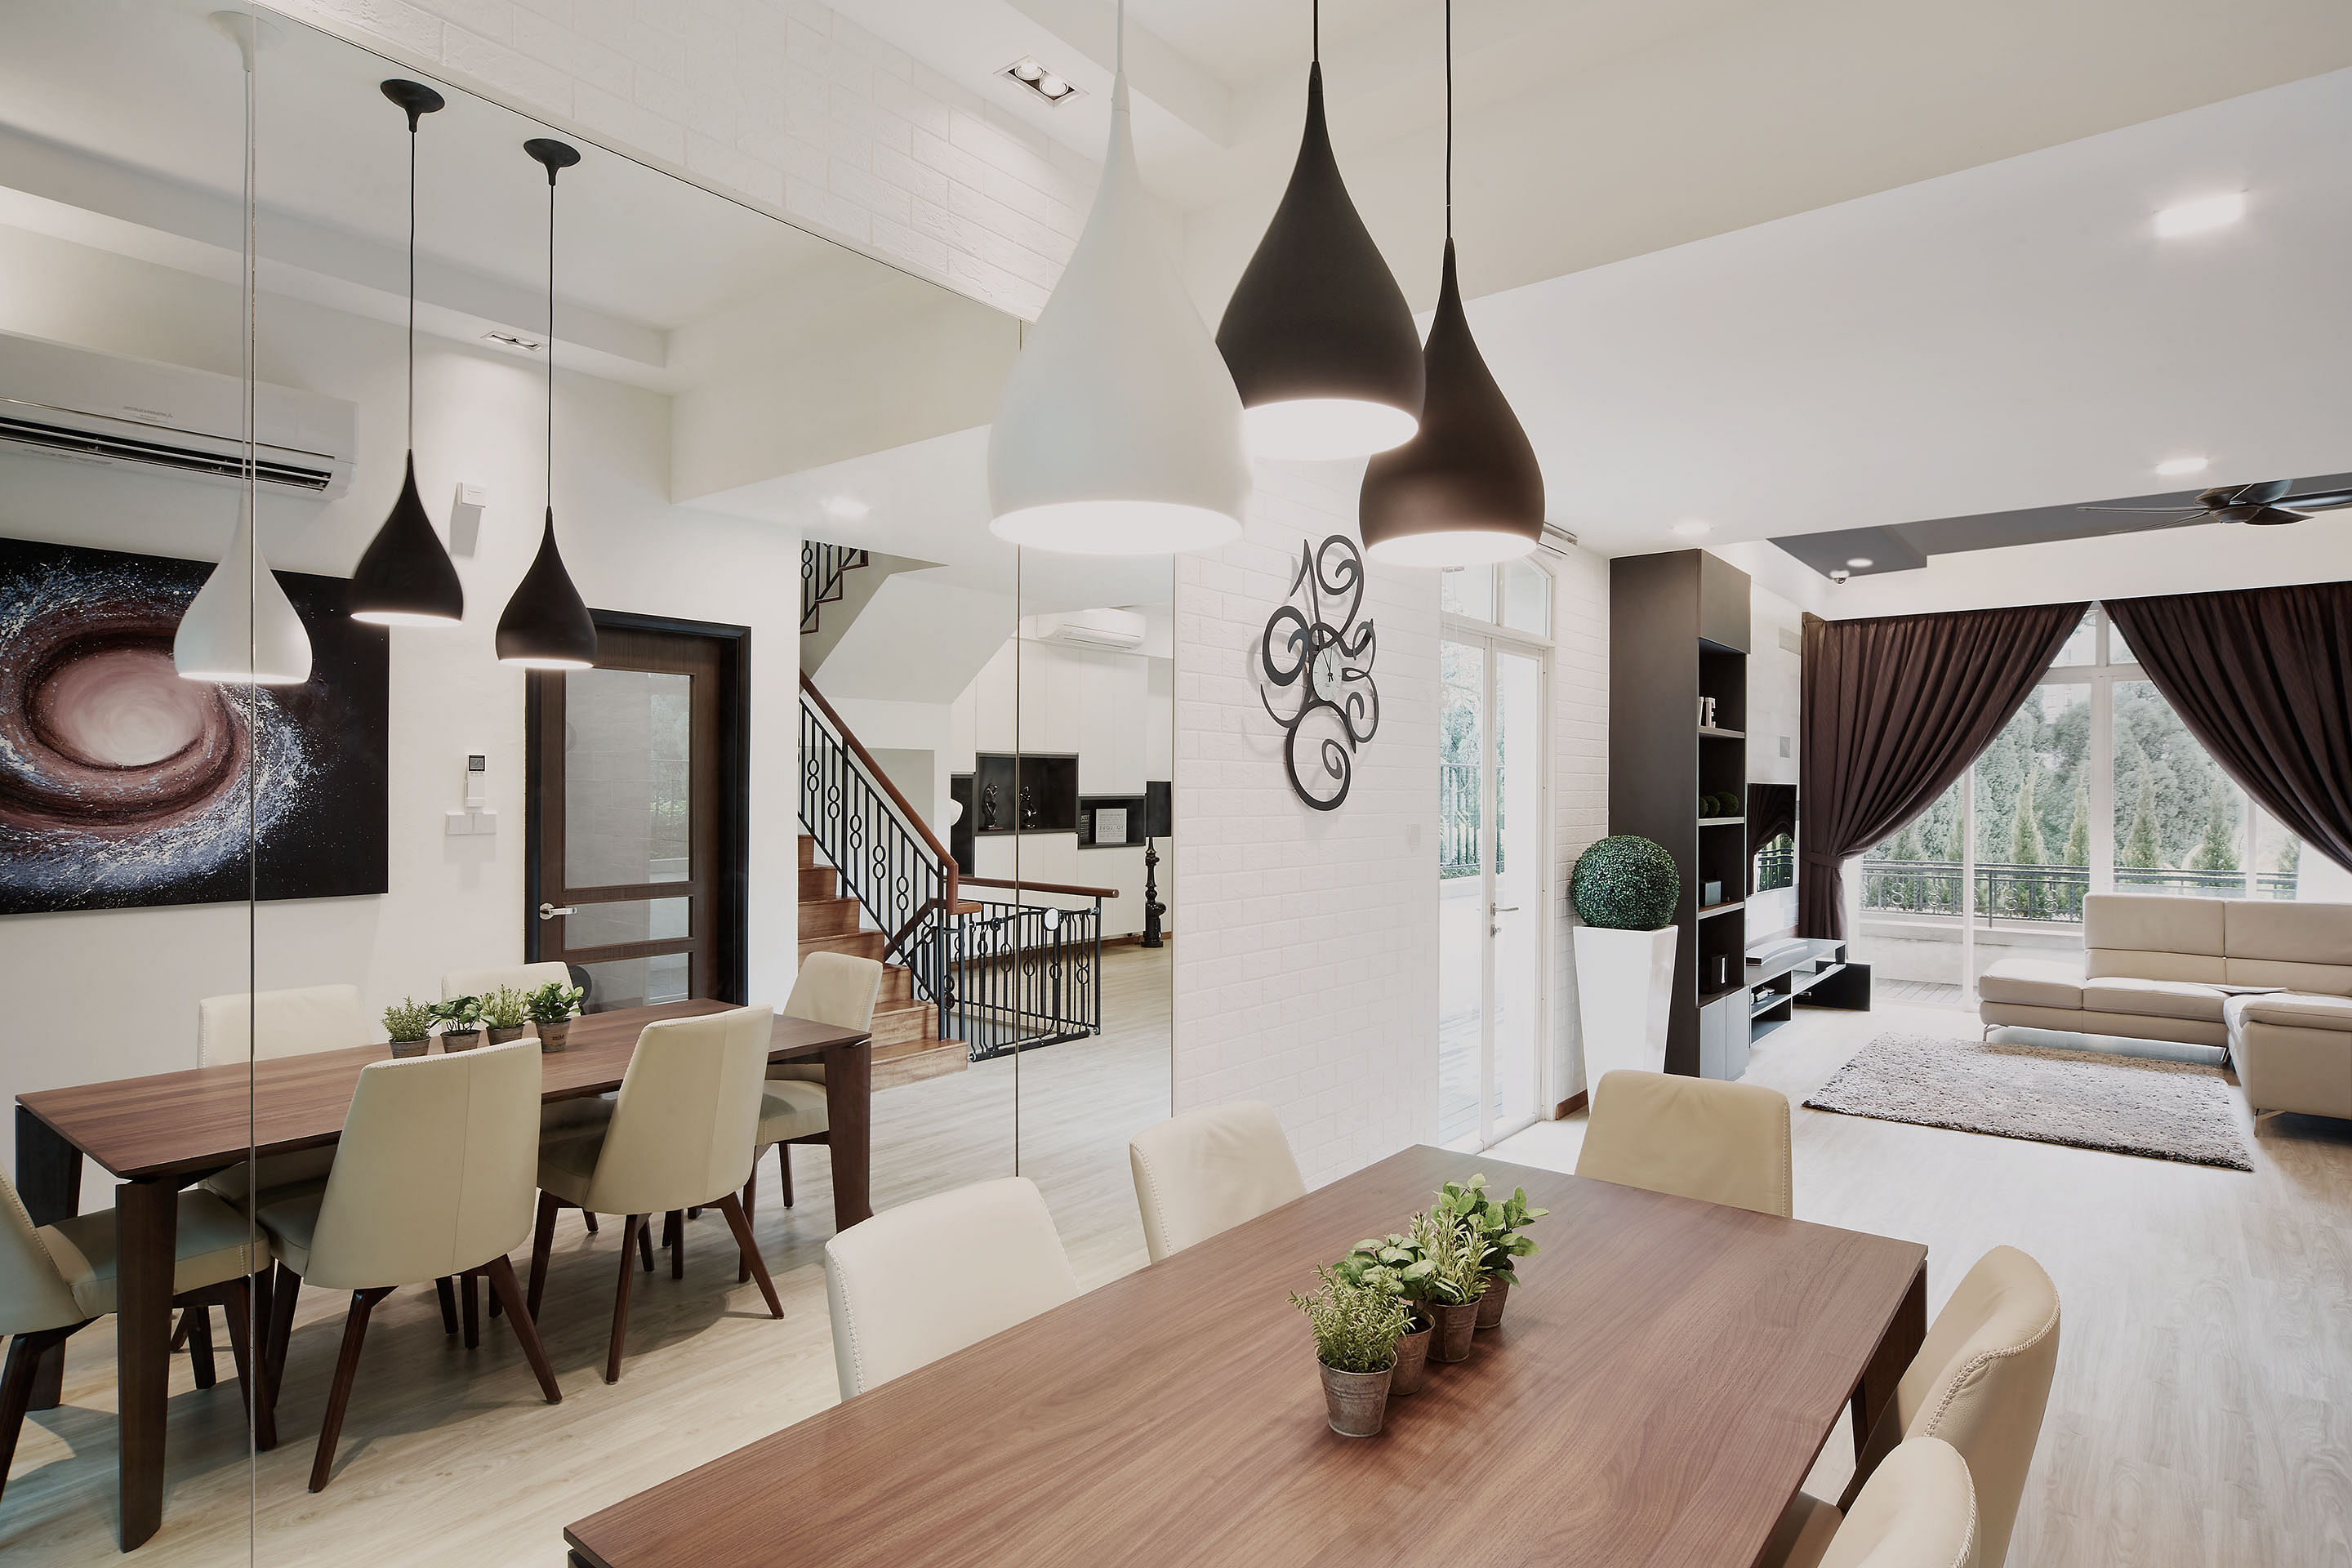 House Tours: Landed properties to see! | Home & Decor Singapore